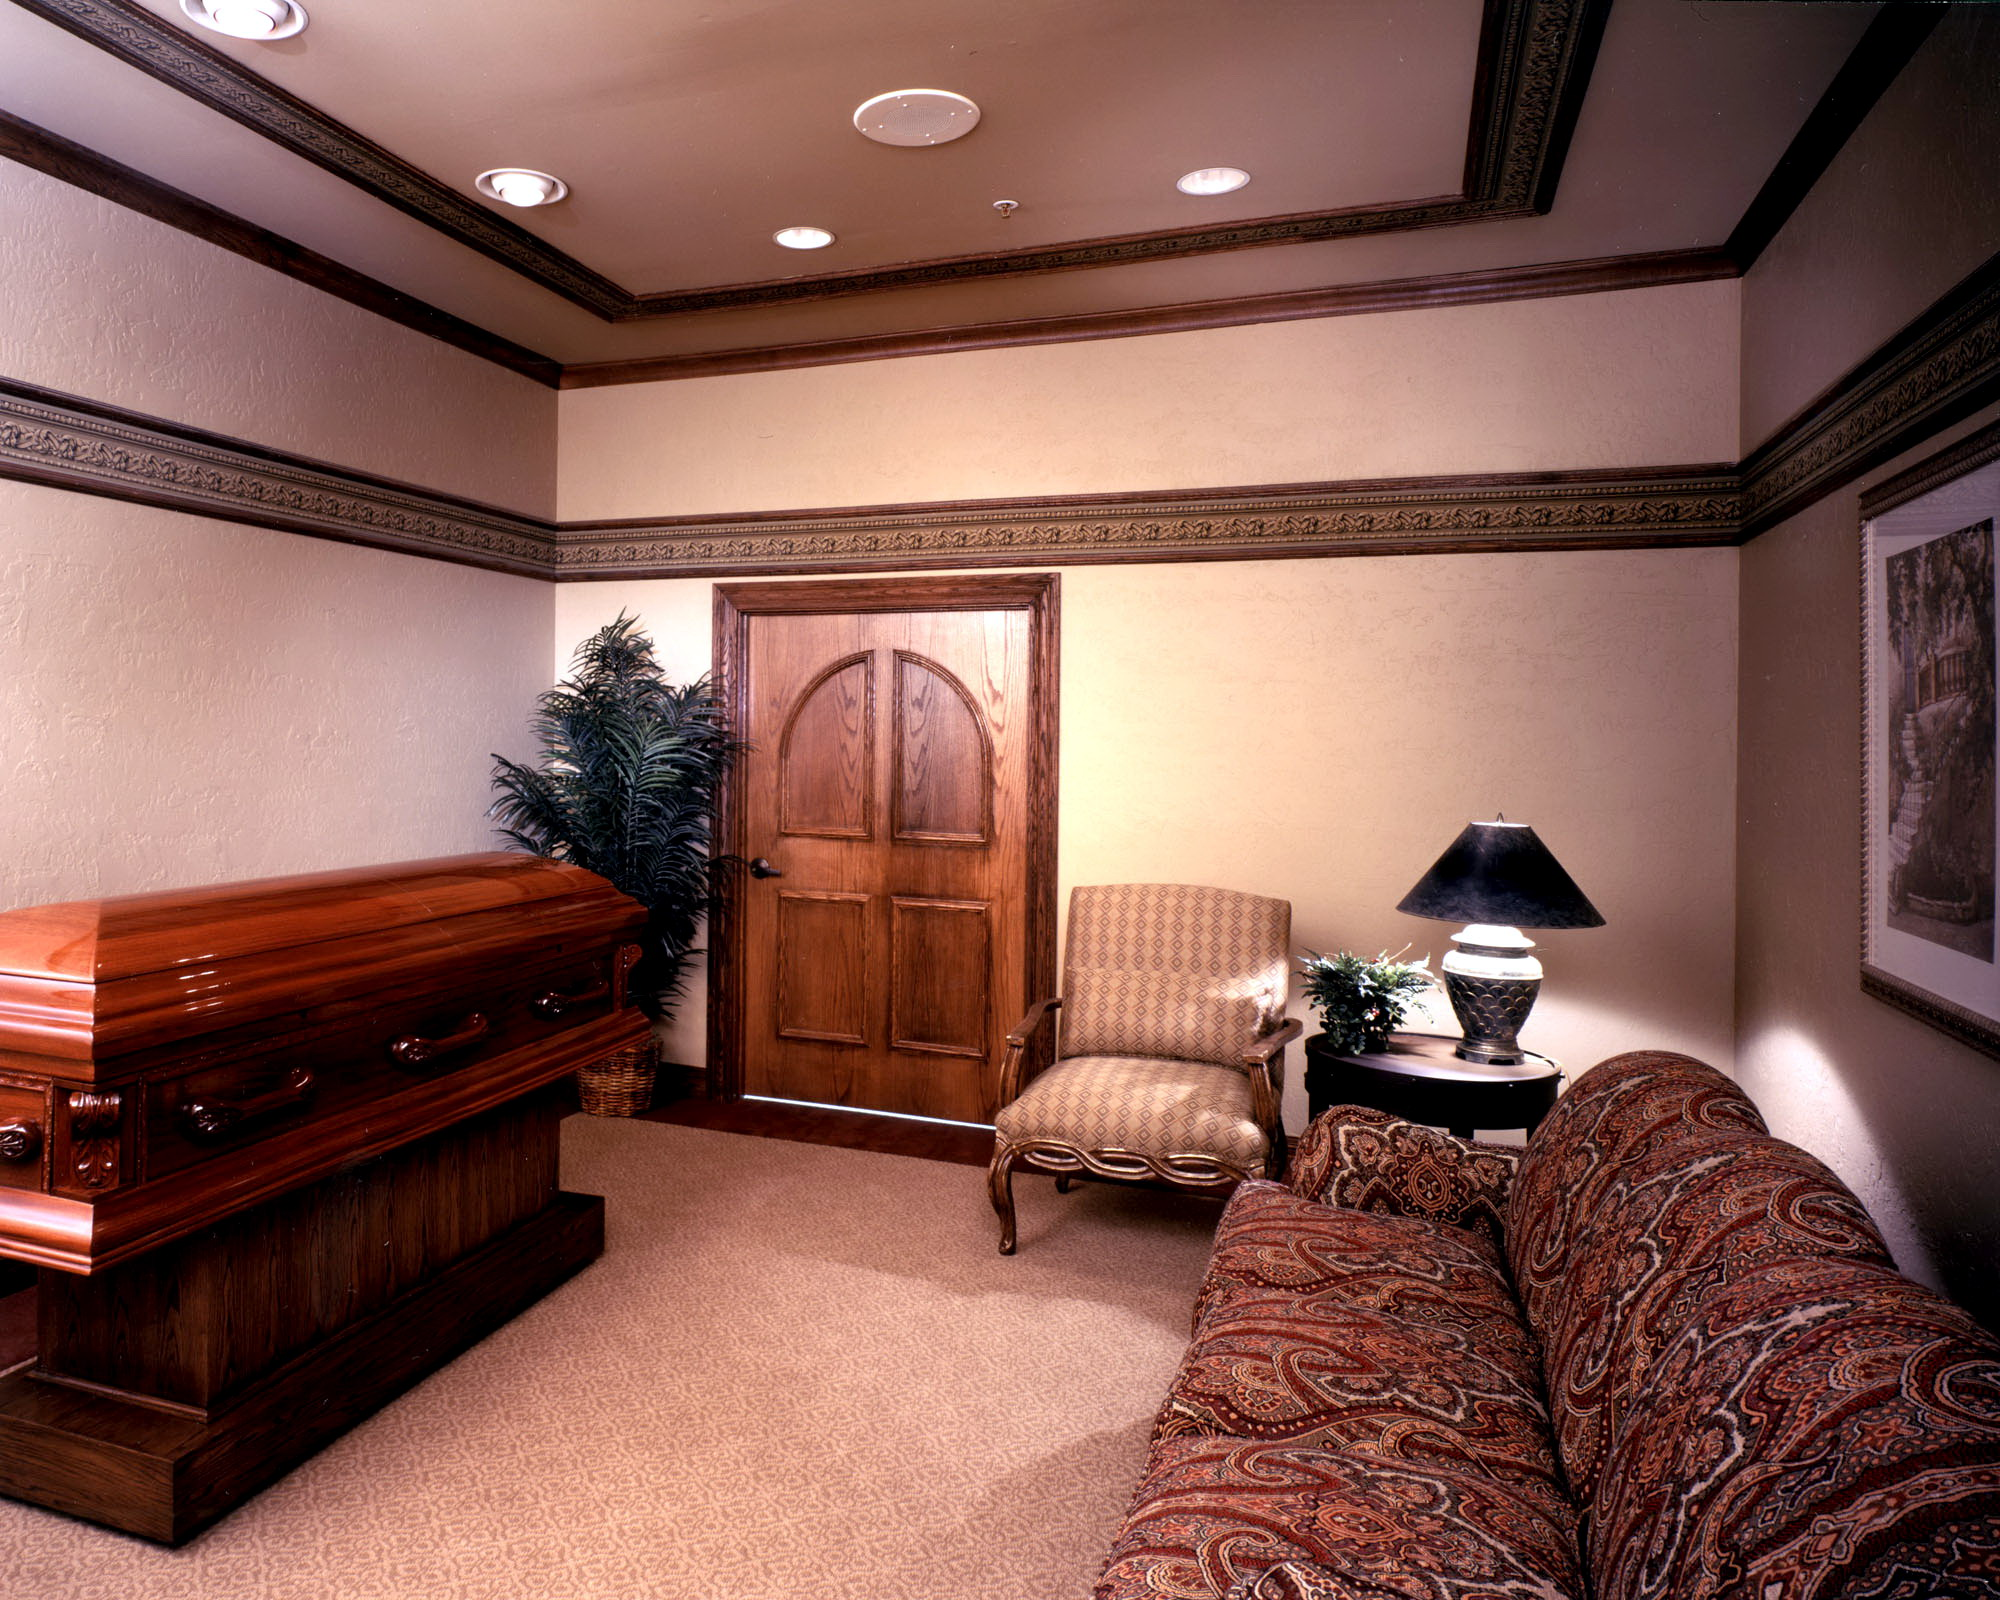 Chapel Of The Chimes Funeral Home Oakland Ca Jst Architects. Description: Funeral  Home Interior Design ...